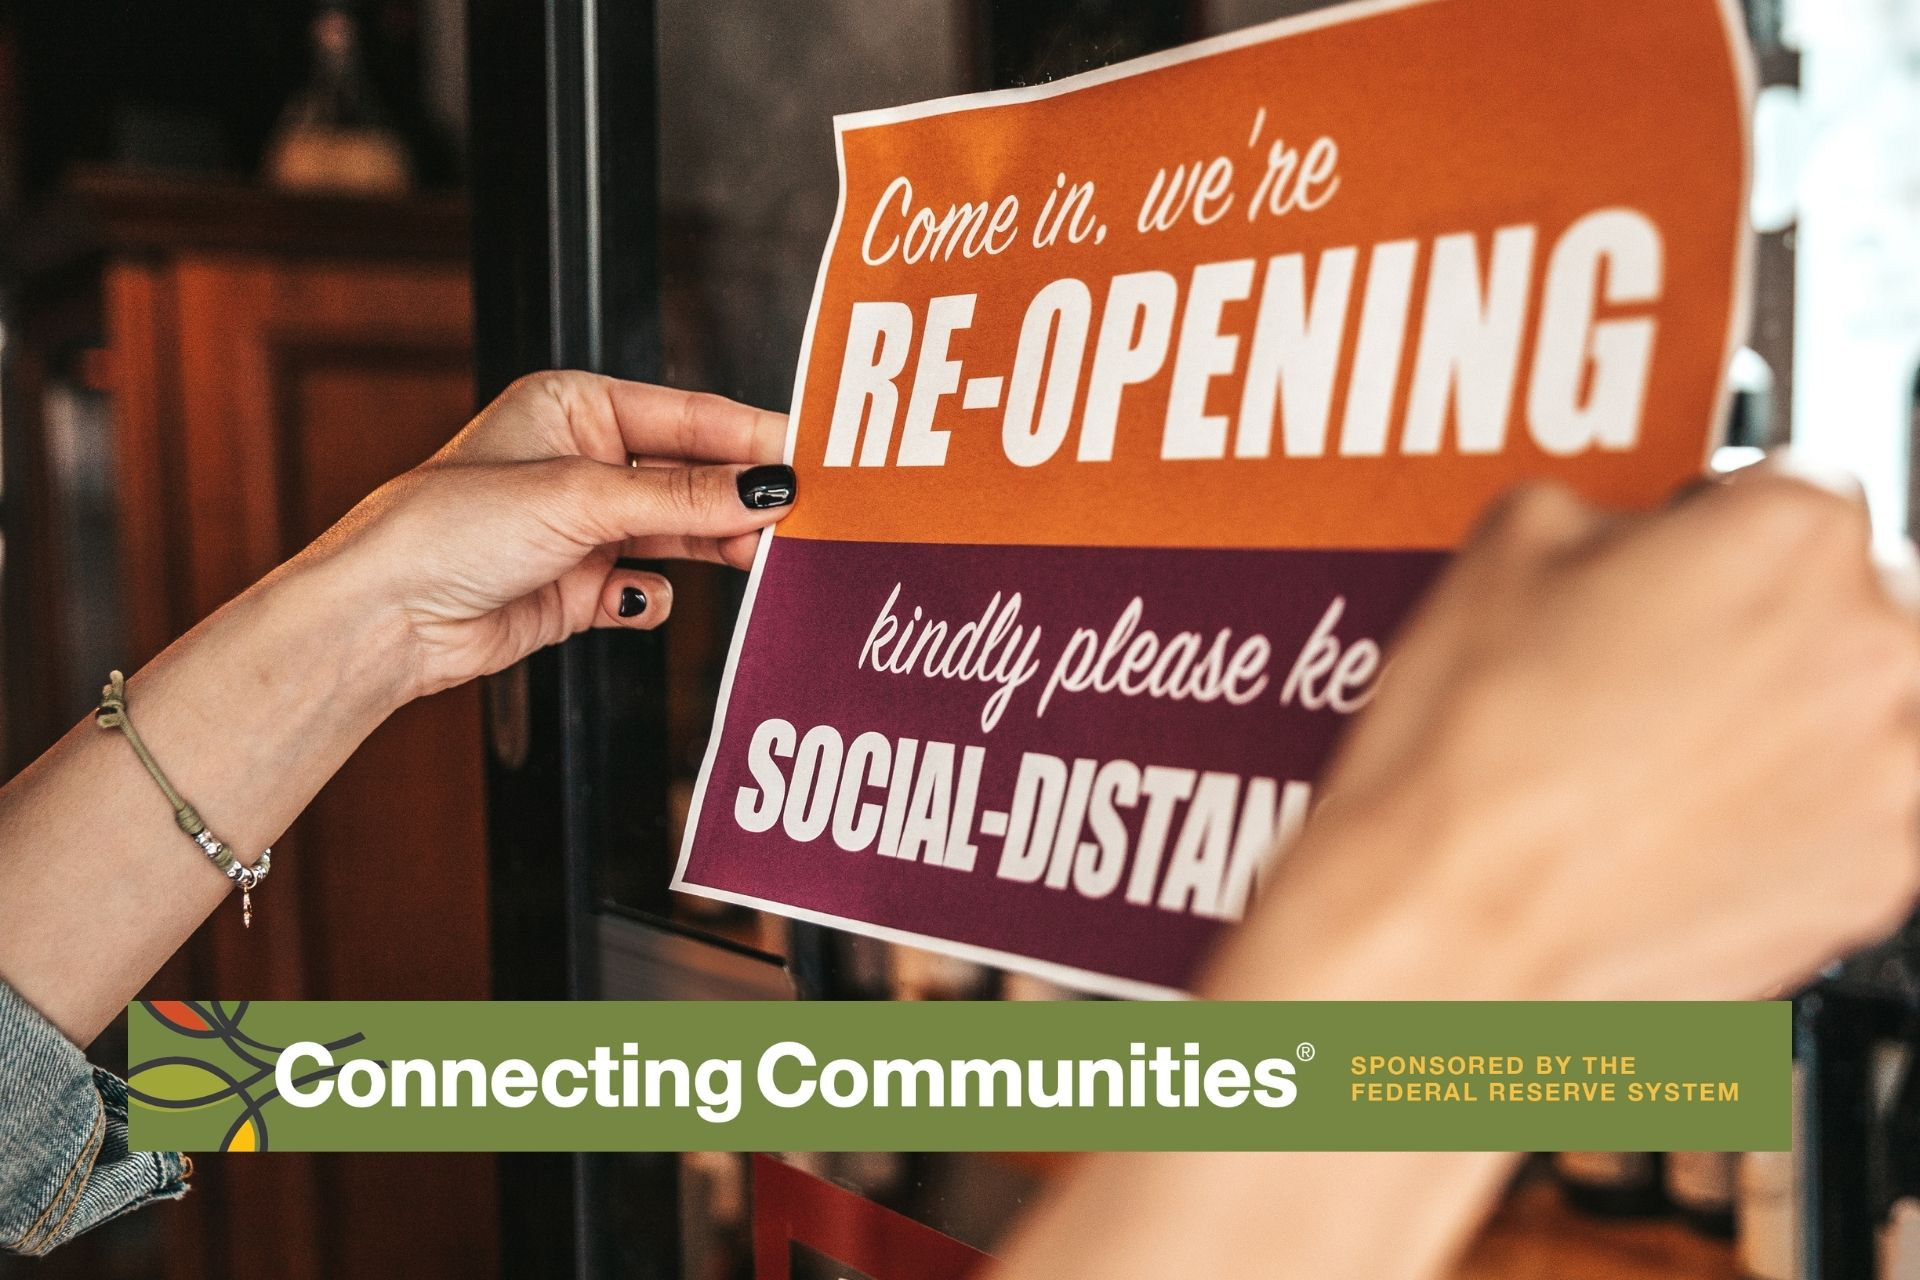 Business re-opening with social distancing